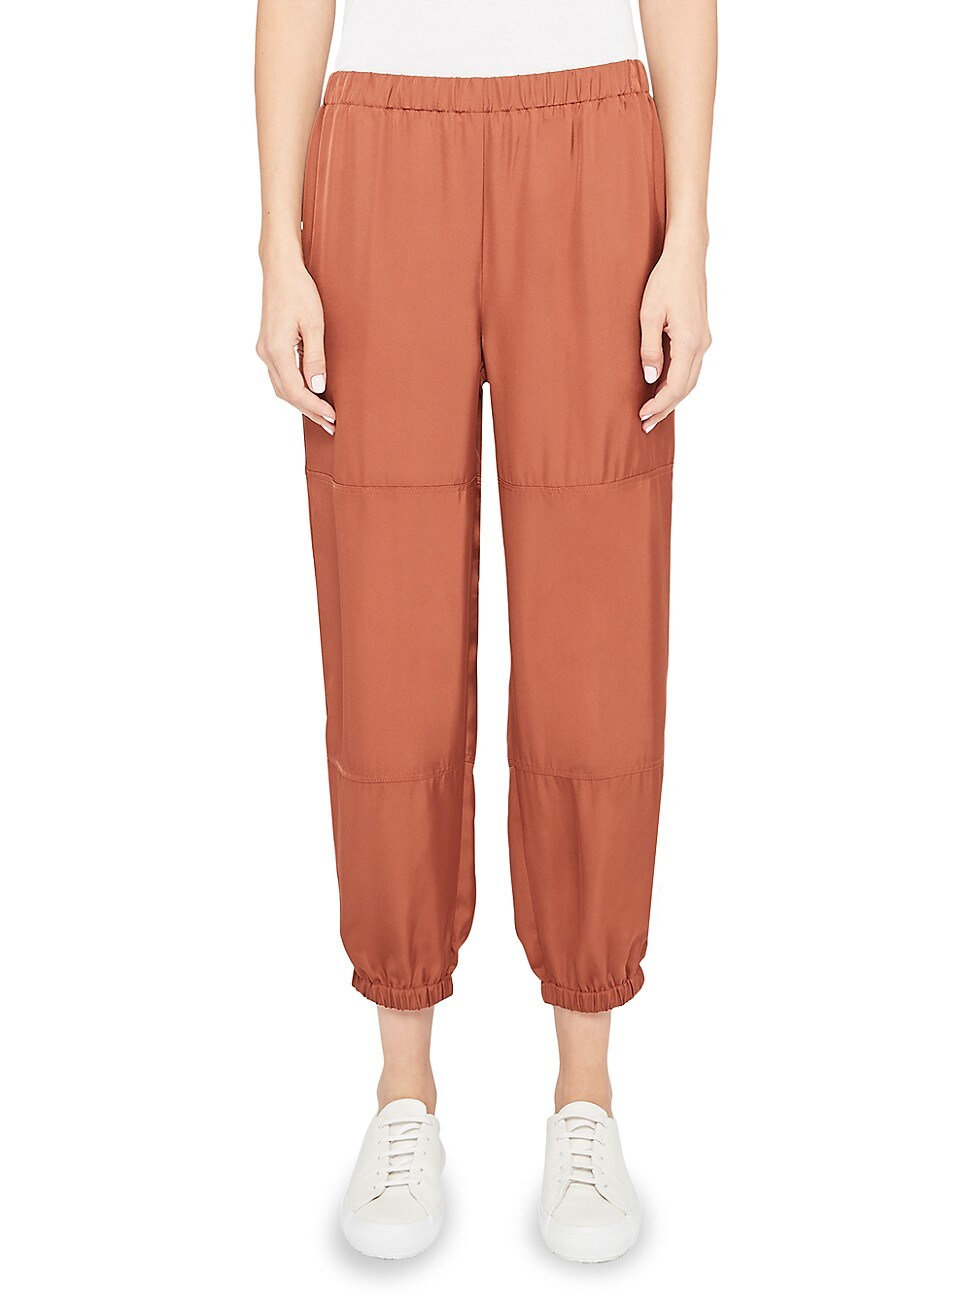 Theory Track pants WOMEN'S SLIM-FIT TWILL CARGO PANTS